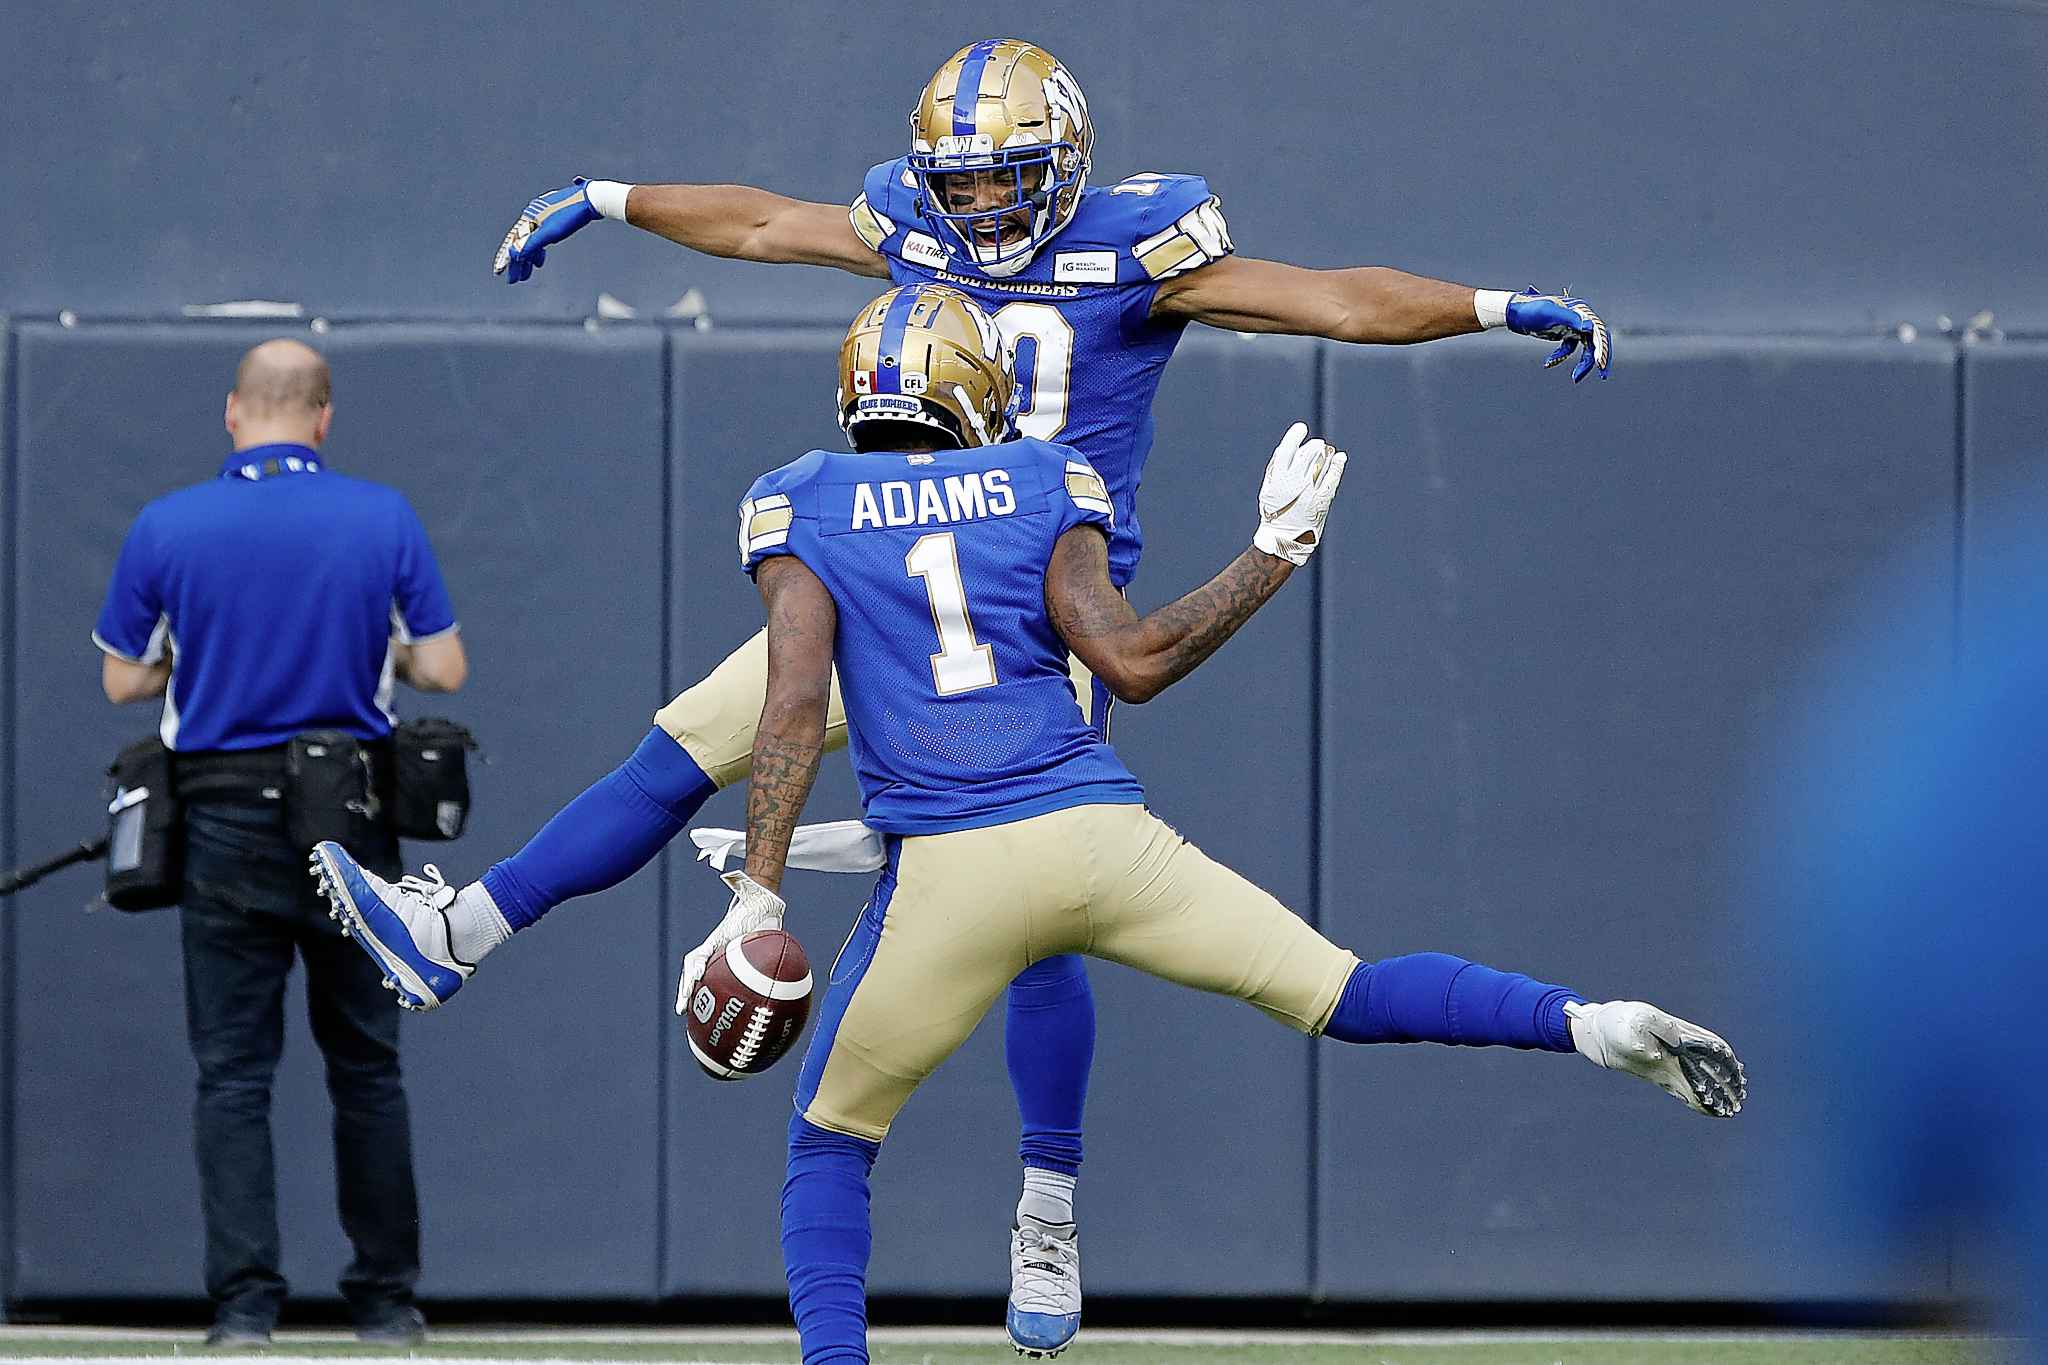 <p>JOHN WOODS / THE CANADIAN PRESS</p> The Bombers' best offensive output of the season came July 12 against the Toronto Argonauts, a 48-21 victory that only produced a combined 239 yards of passing but four offensive touchdowns. Darvin Adams and Nic Demski celebrate one of them.